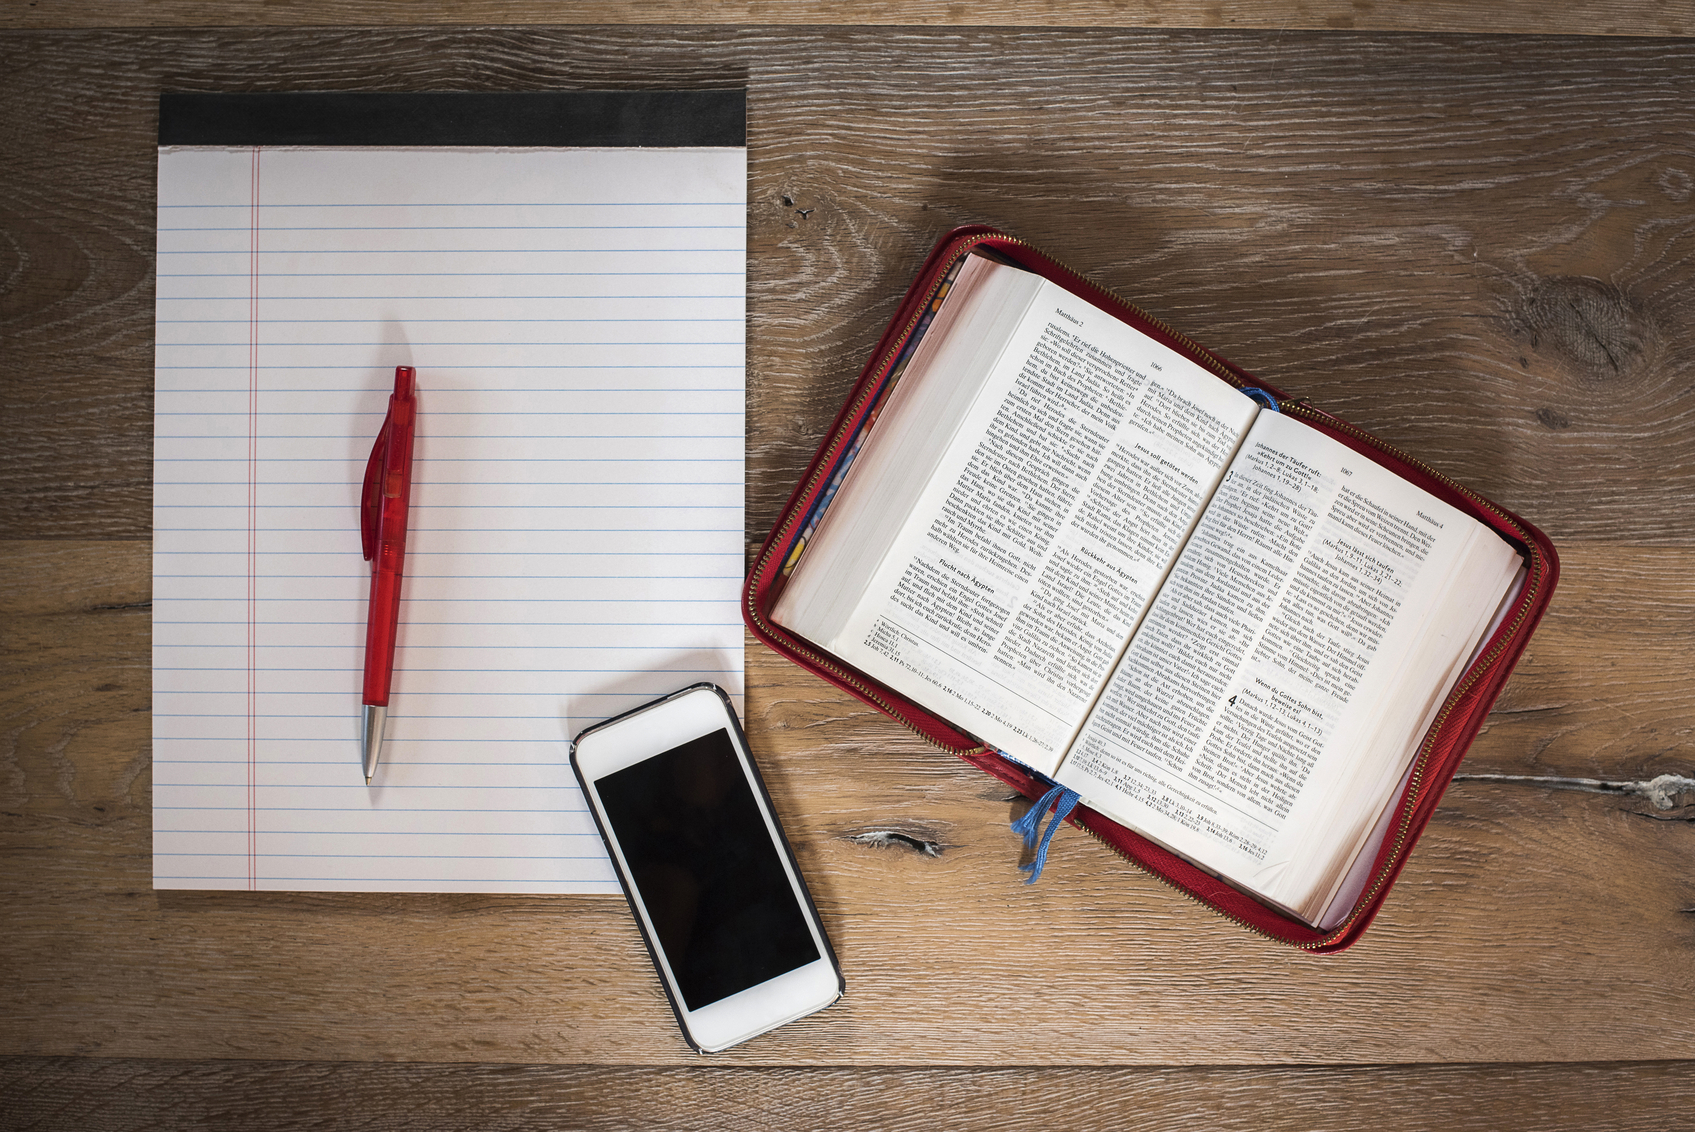 bible-iphone-legal-pad.jpg